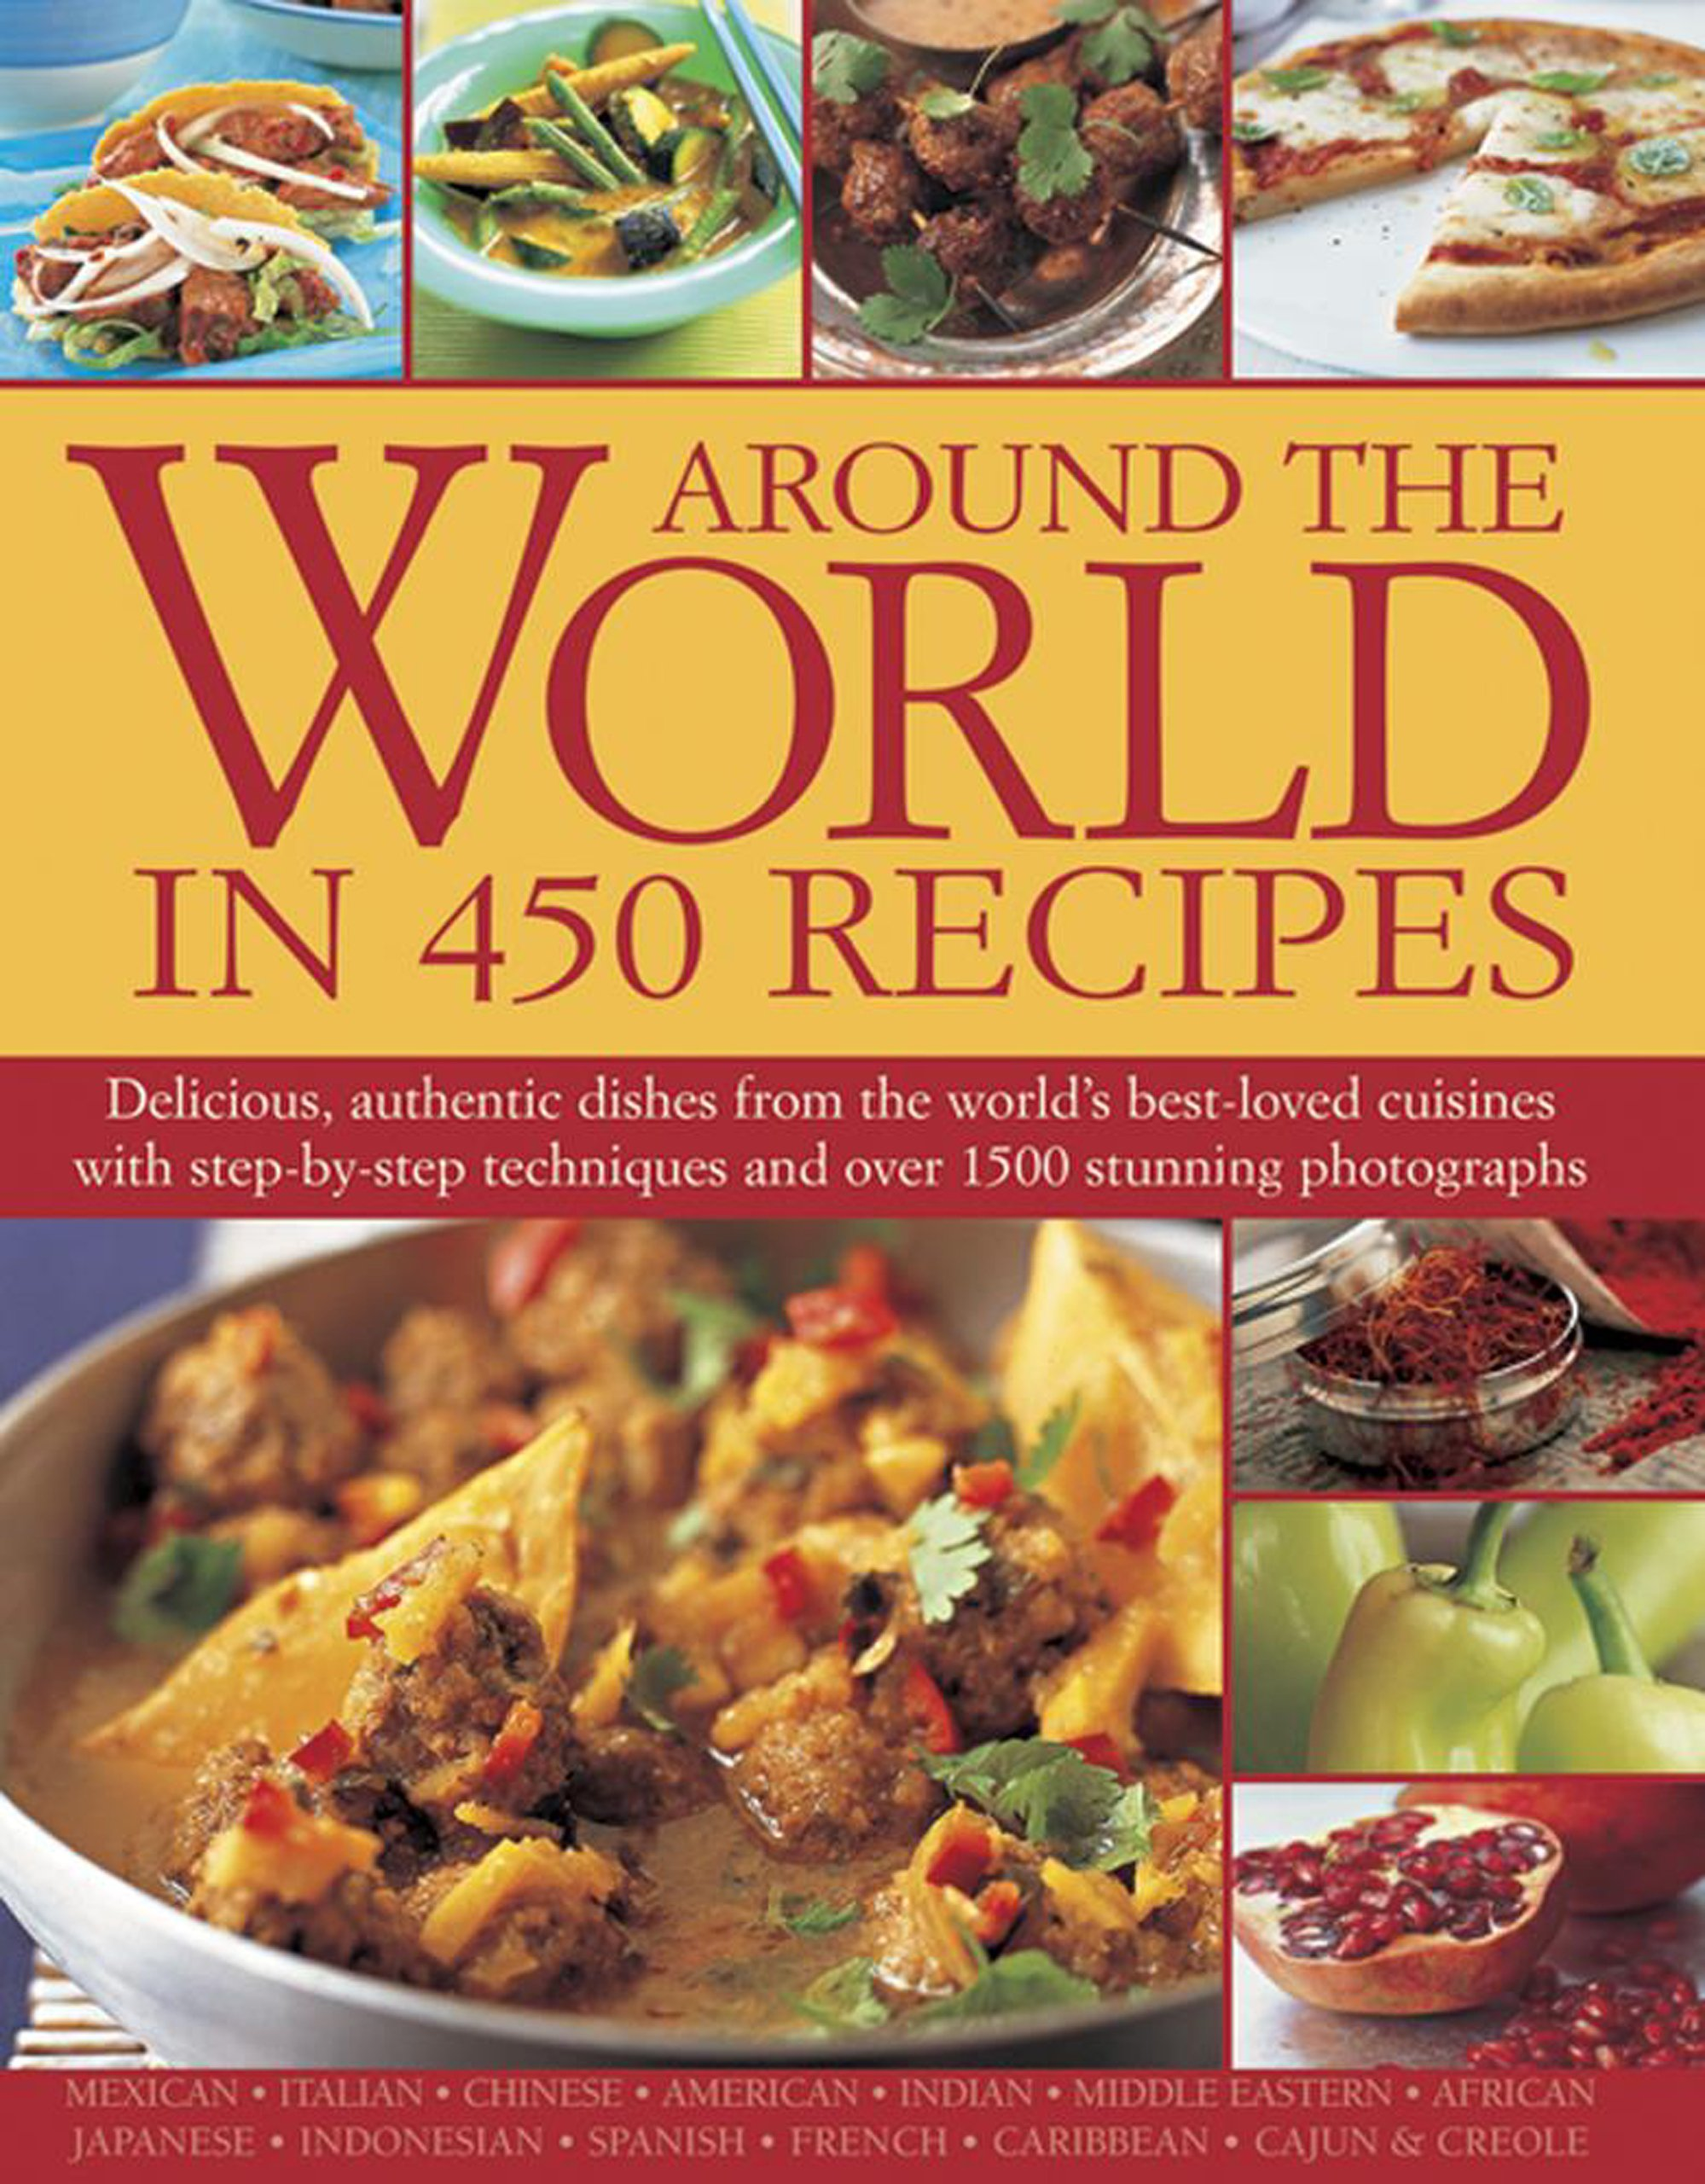 Around the world in 450 recipes sarah ainley 9781844775279 around the world in 450 recipes sarah ainley 9781844775279 amazon books forumfinder